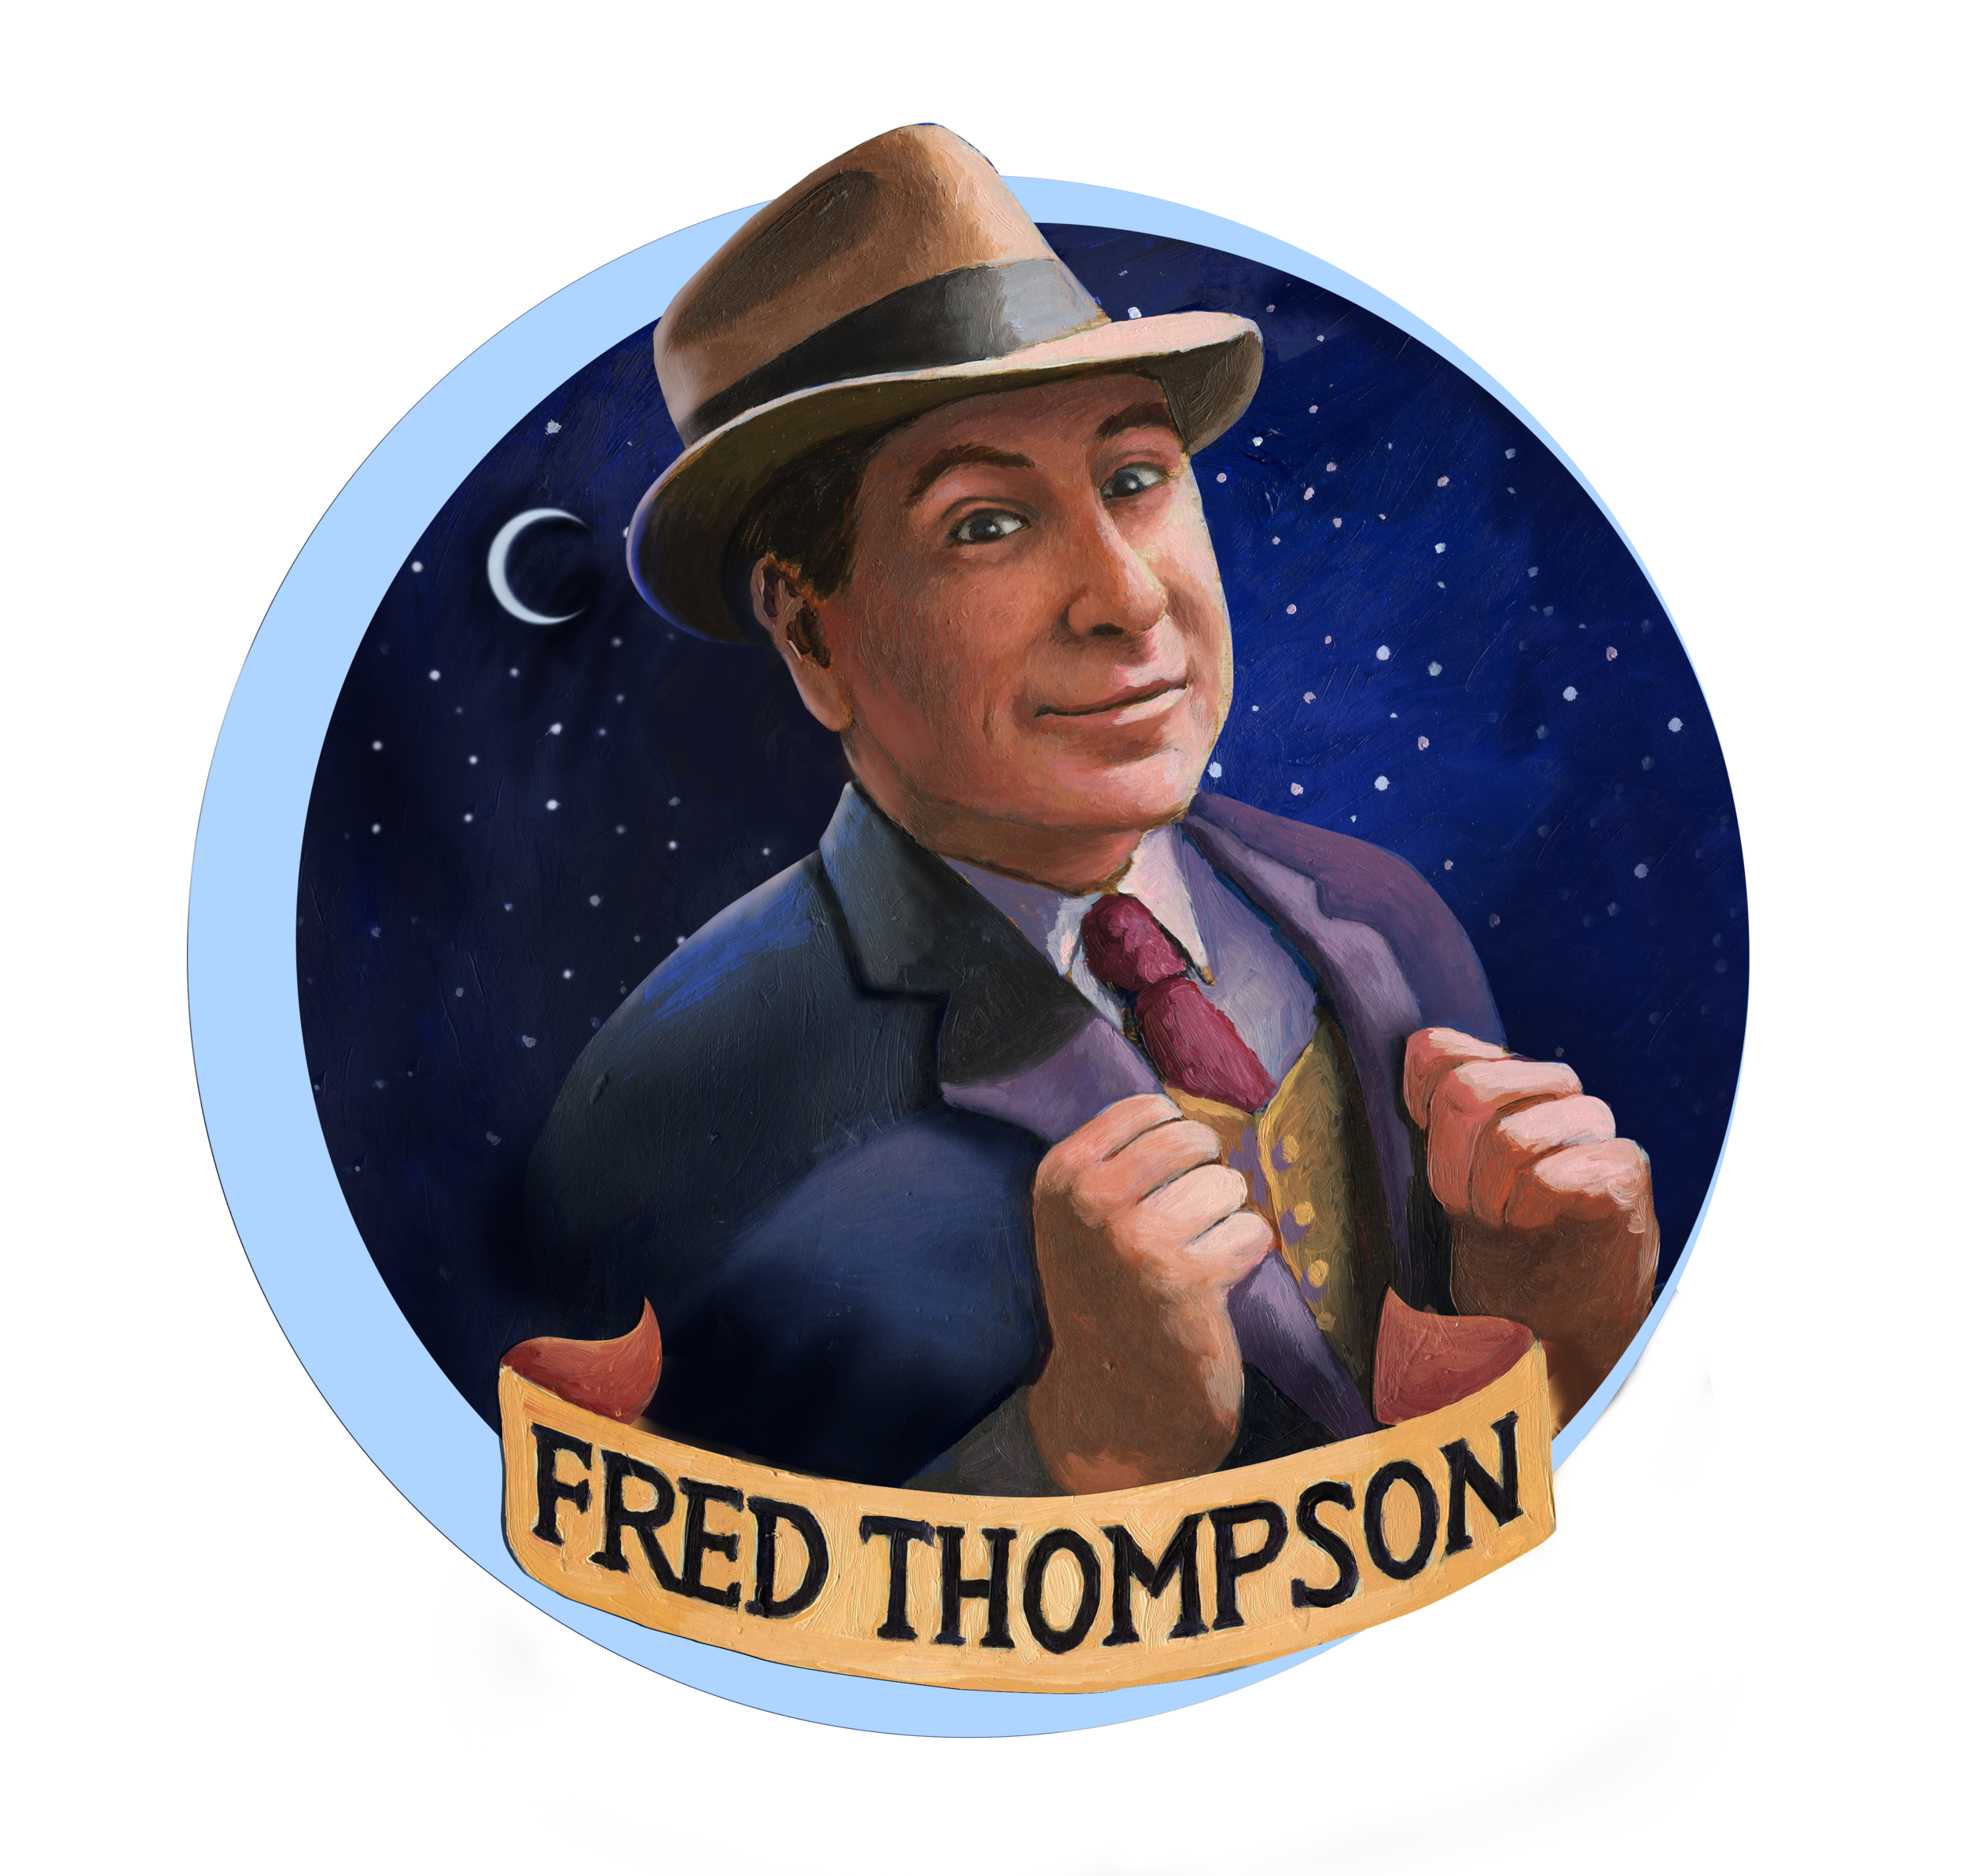 Fred Thompson vignette painting.png